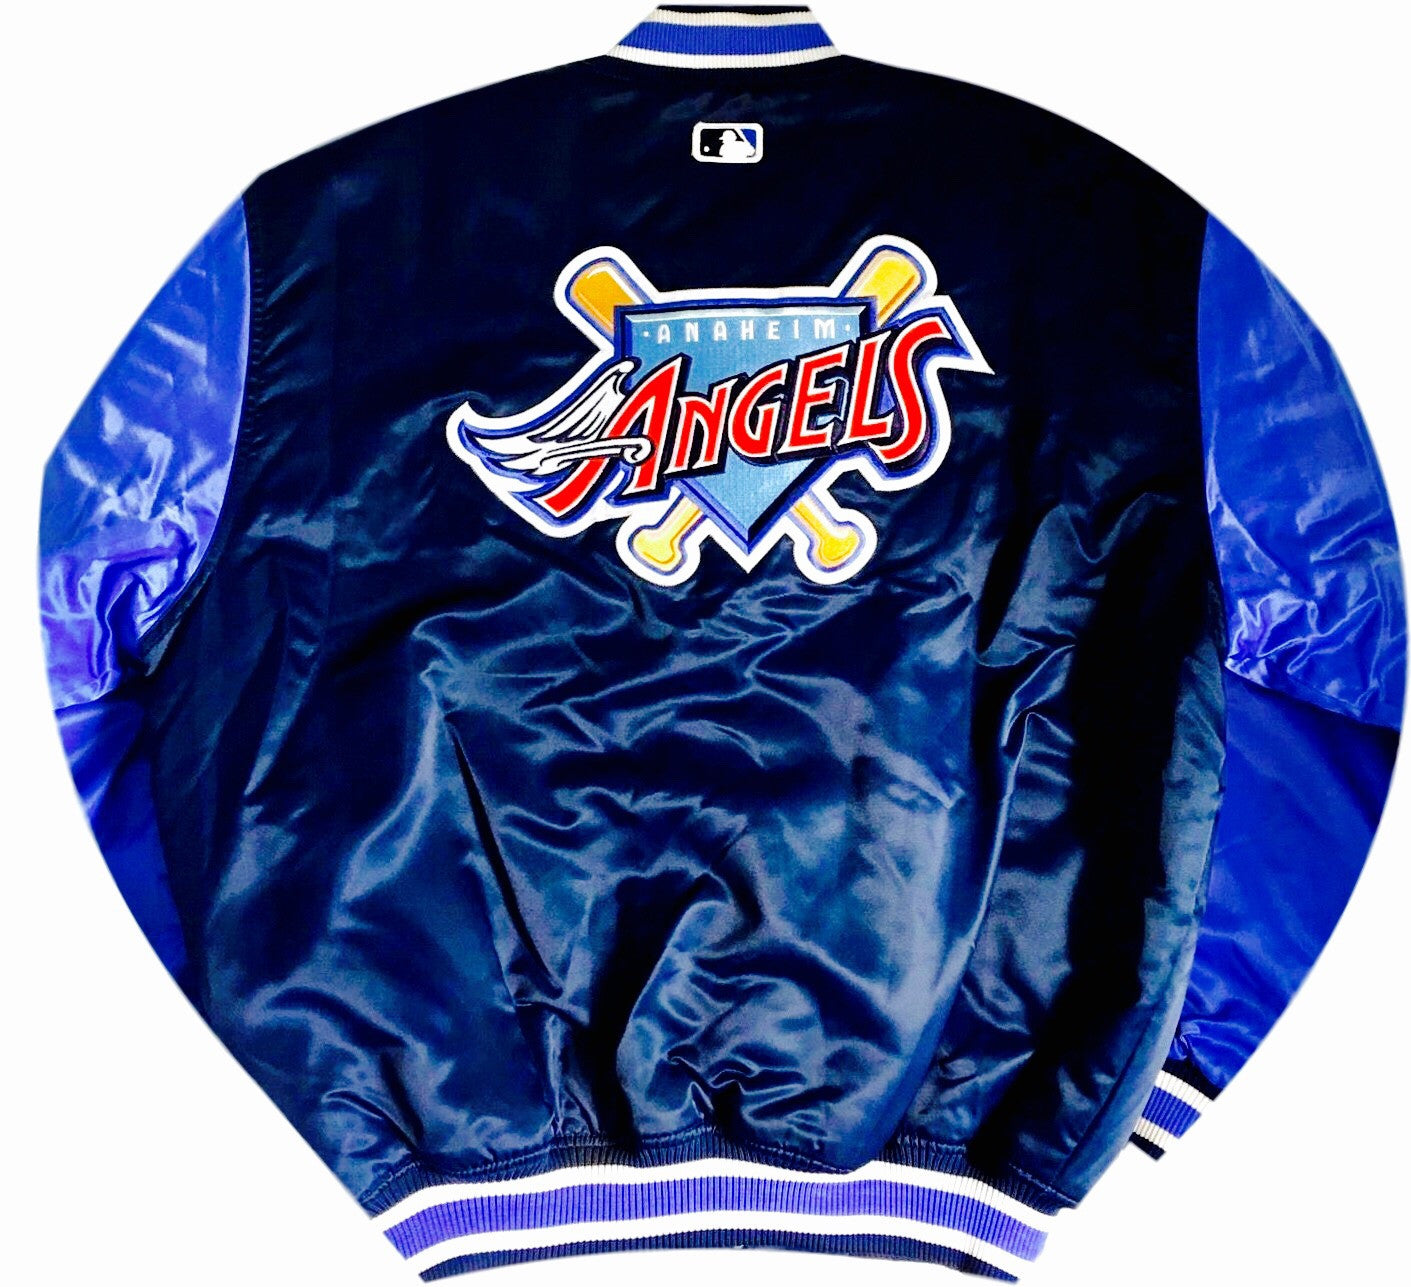 Angels Vintage Starter Jacket - And Still